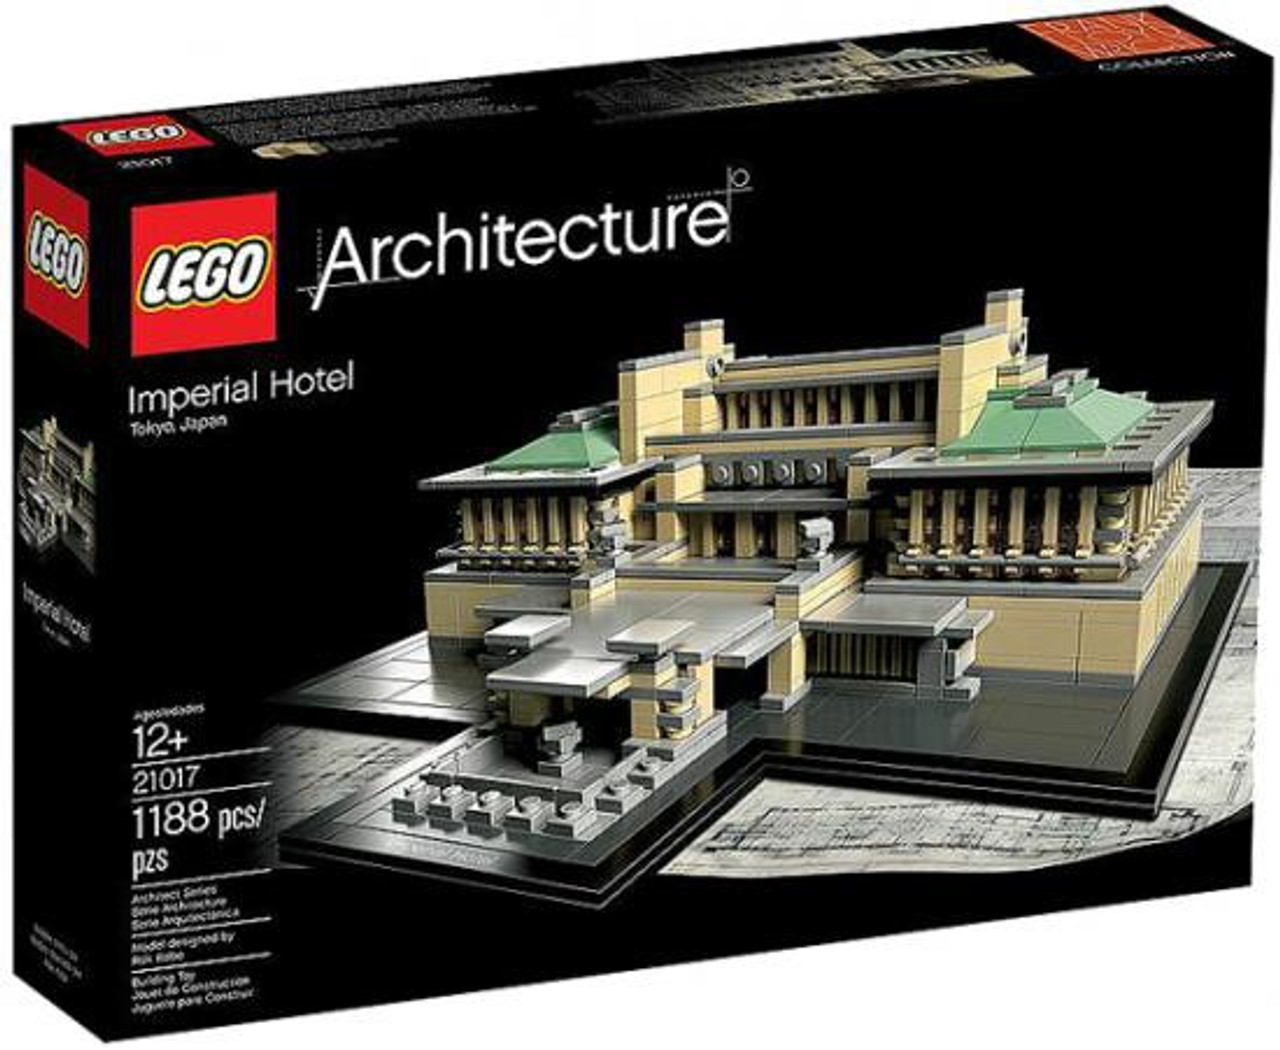 LEGO Architecture Imperial Hotel Set #21017